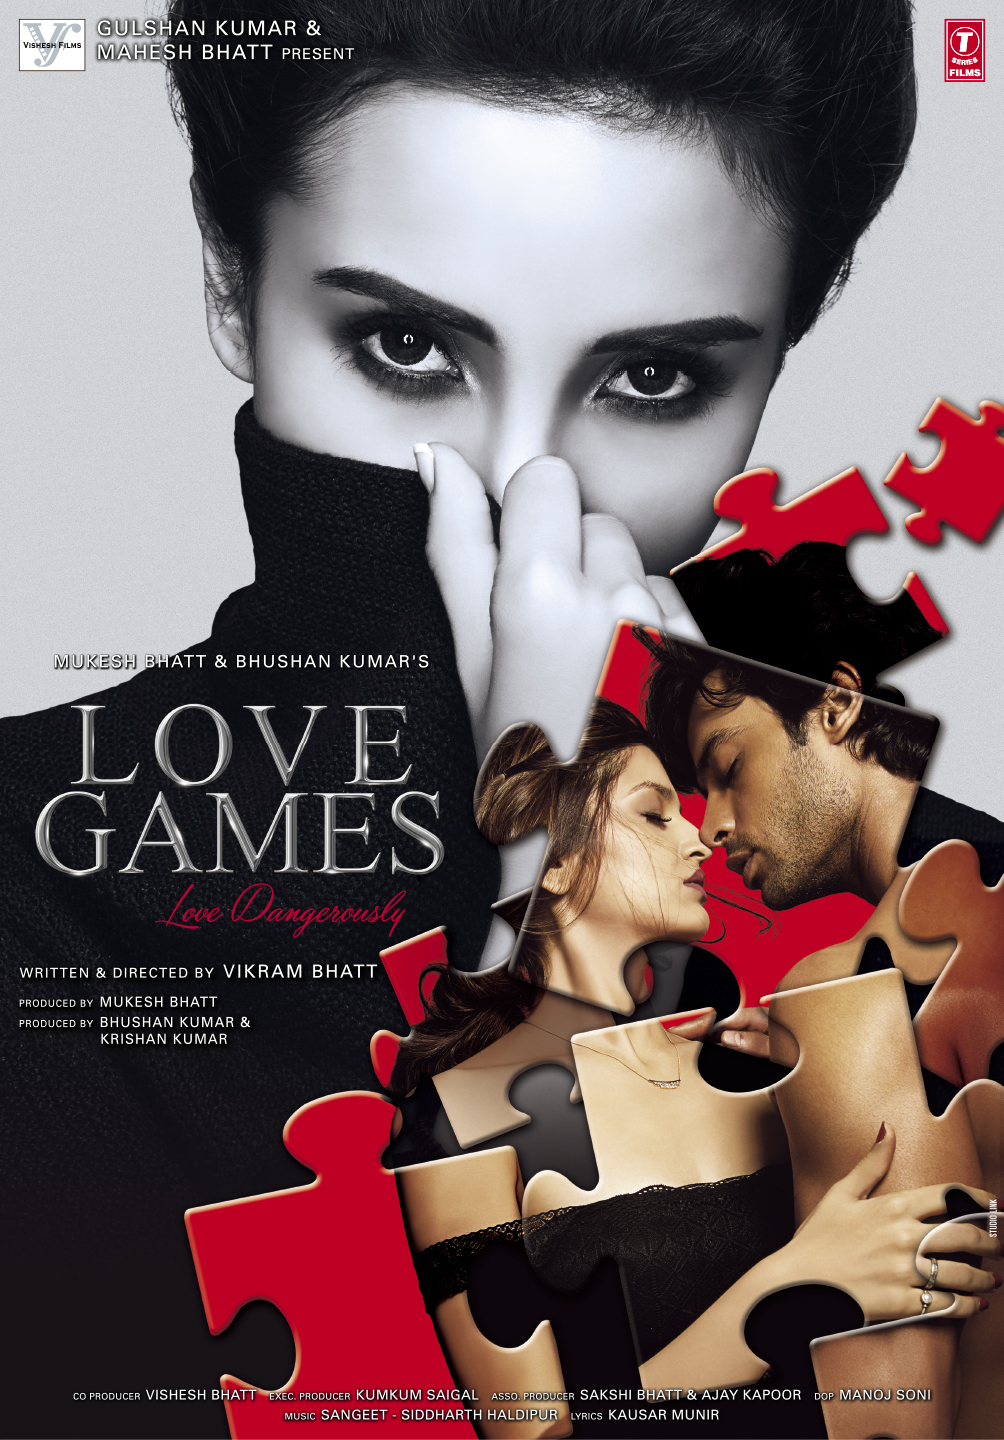 18+ Love Games (2016) Hindi Movie 1080p HDRip 2.2GB Download